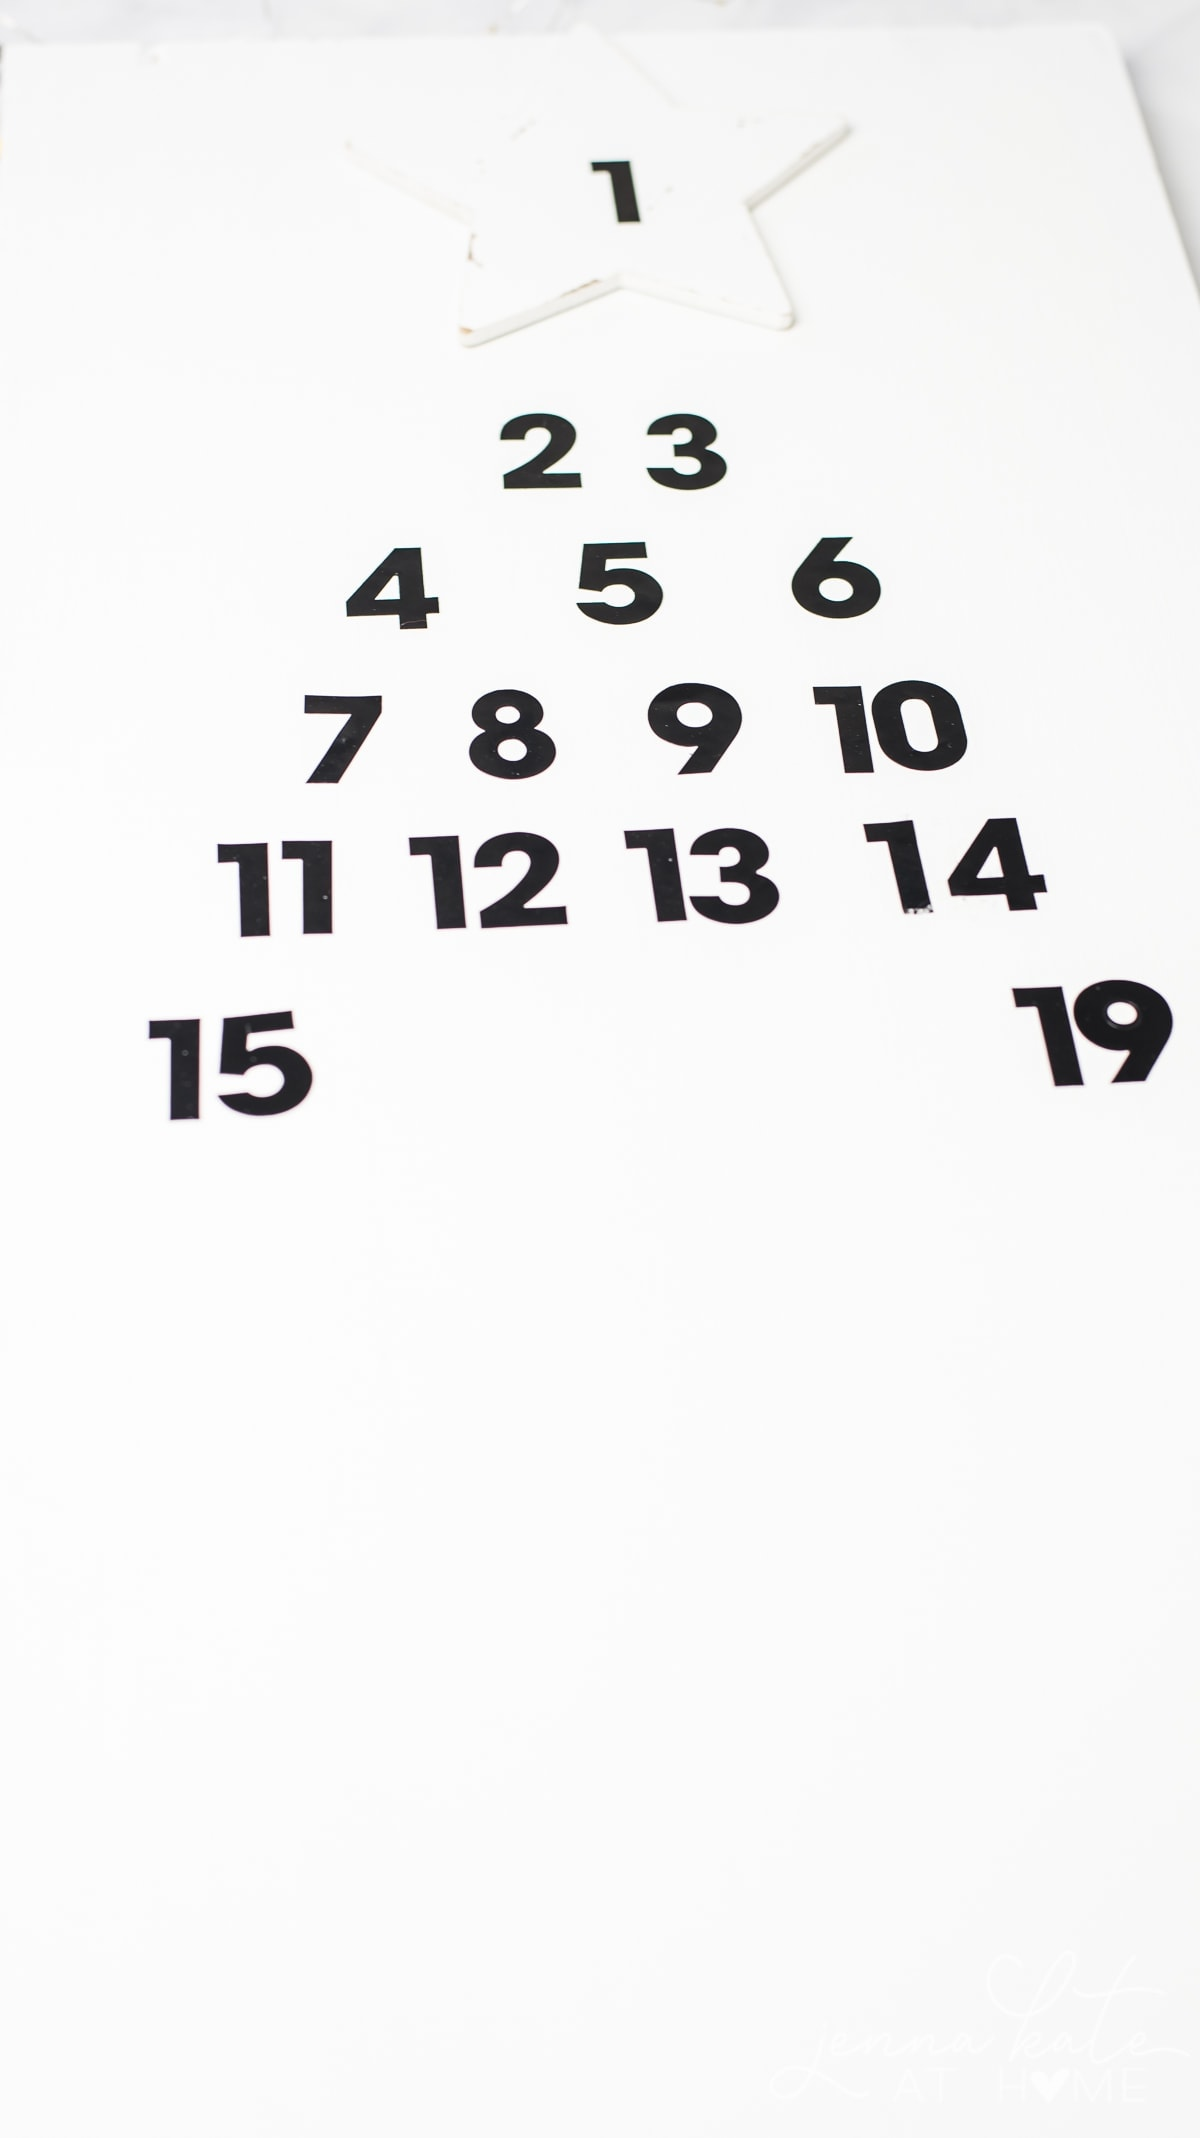 Place the advent calendar numbers in the shape of a Christmas tree